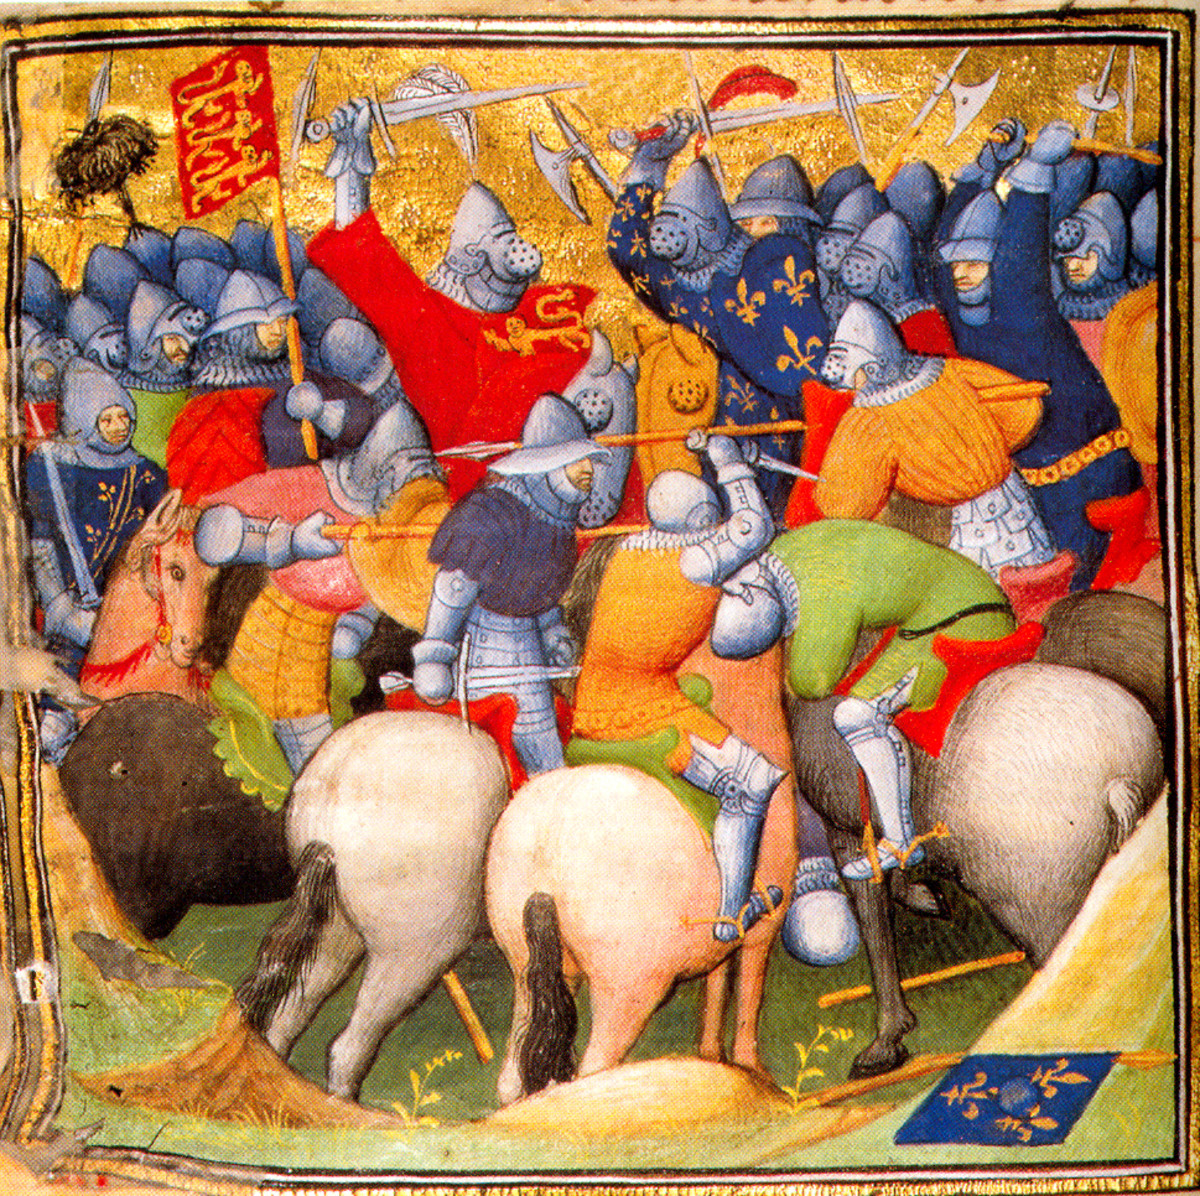 English and French knights fighting at the Battle of Crécy in 1346. The king could call on his barons to form an army at times of war. Knights and nobility would normally be mounted on horses, while the peasantry went to war on foot.